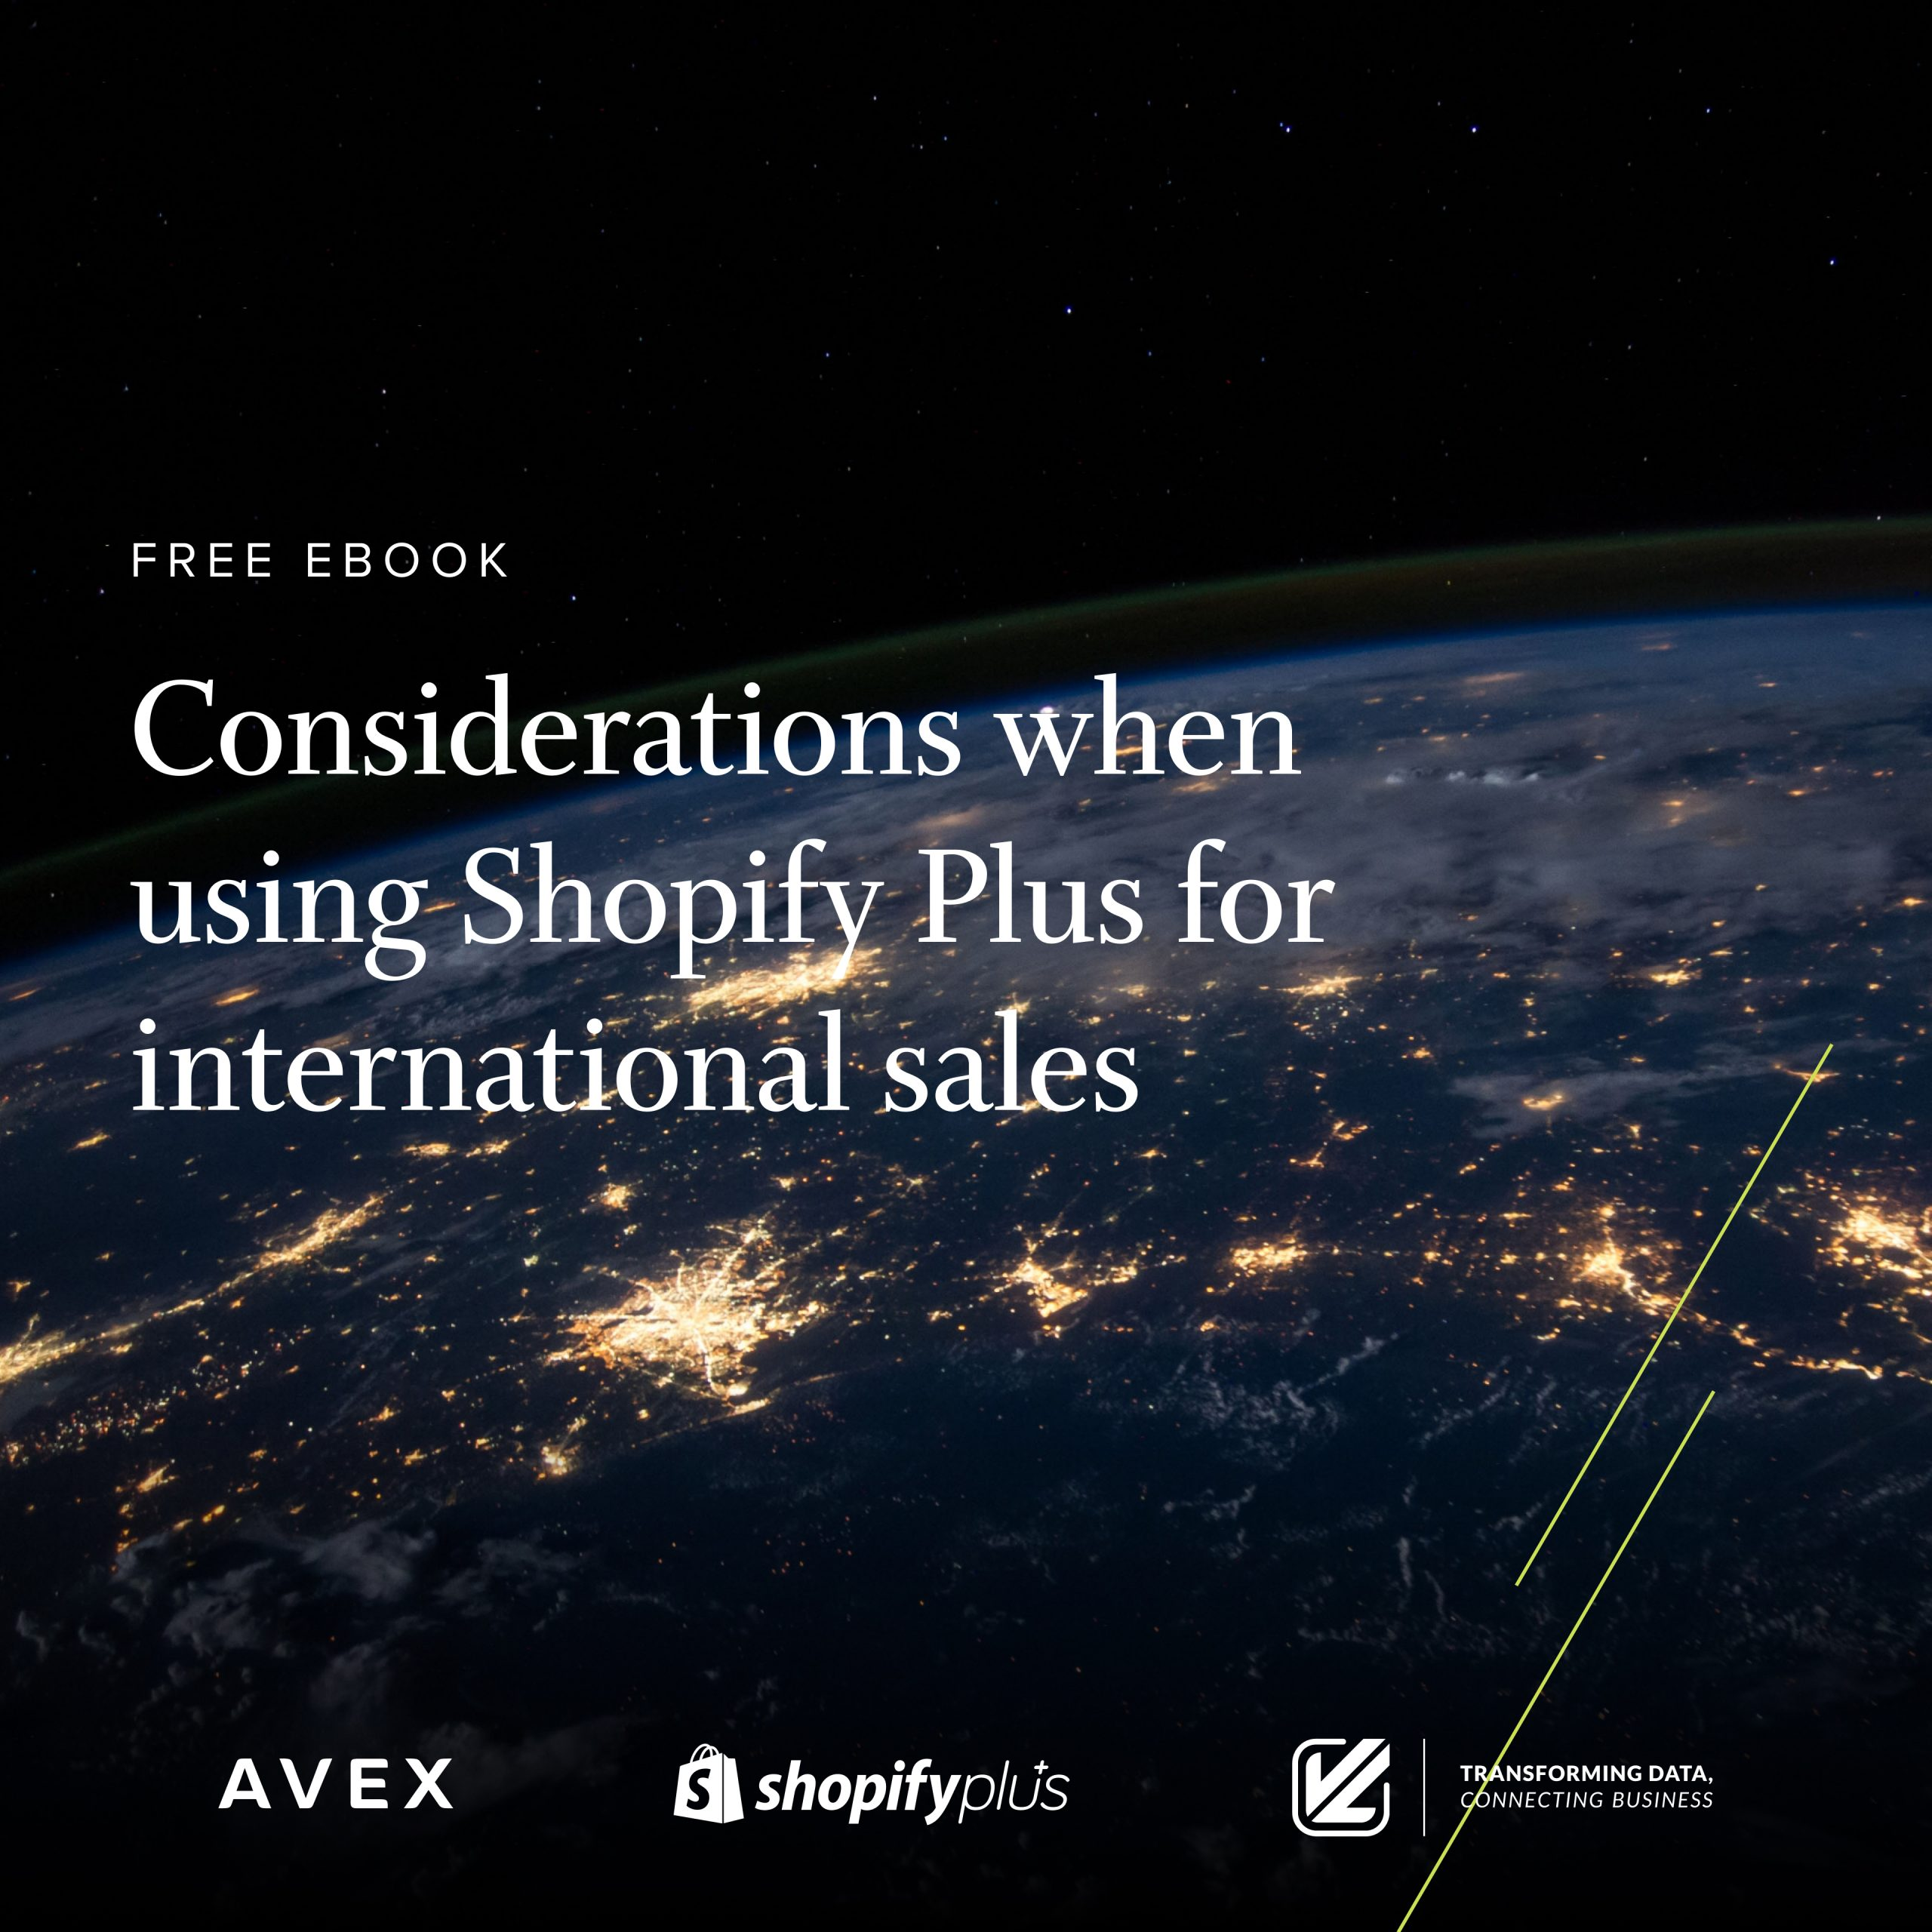 International commerce with Shopify Plus, selling internationally